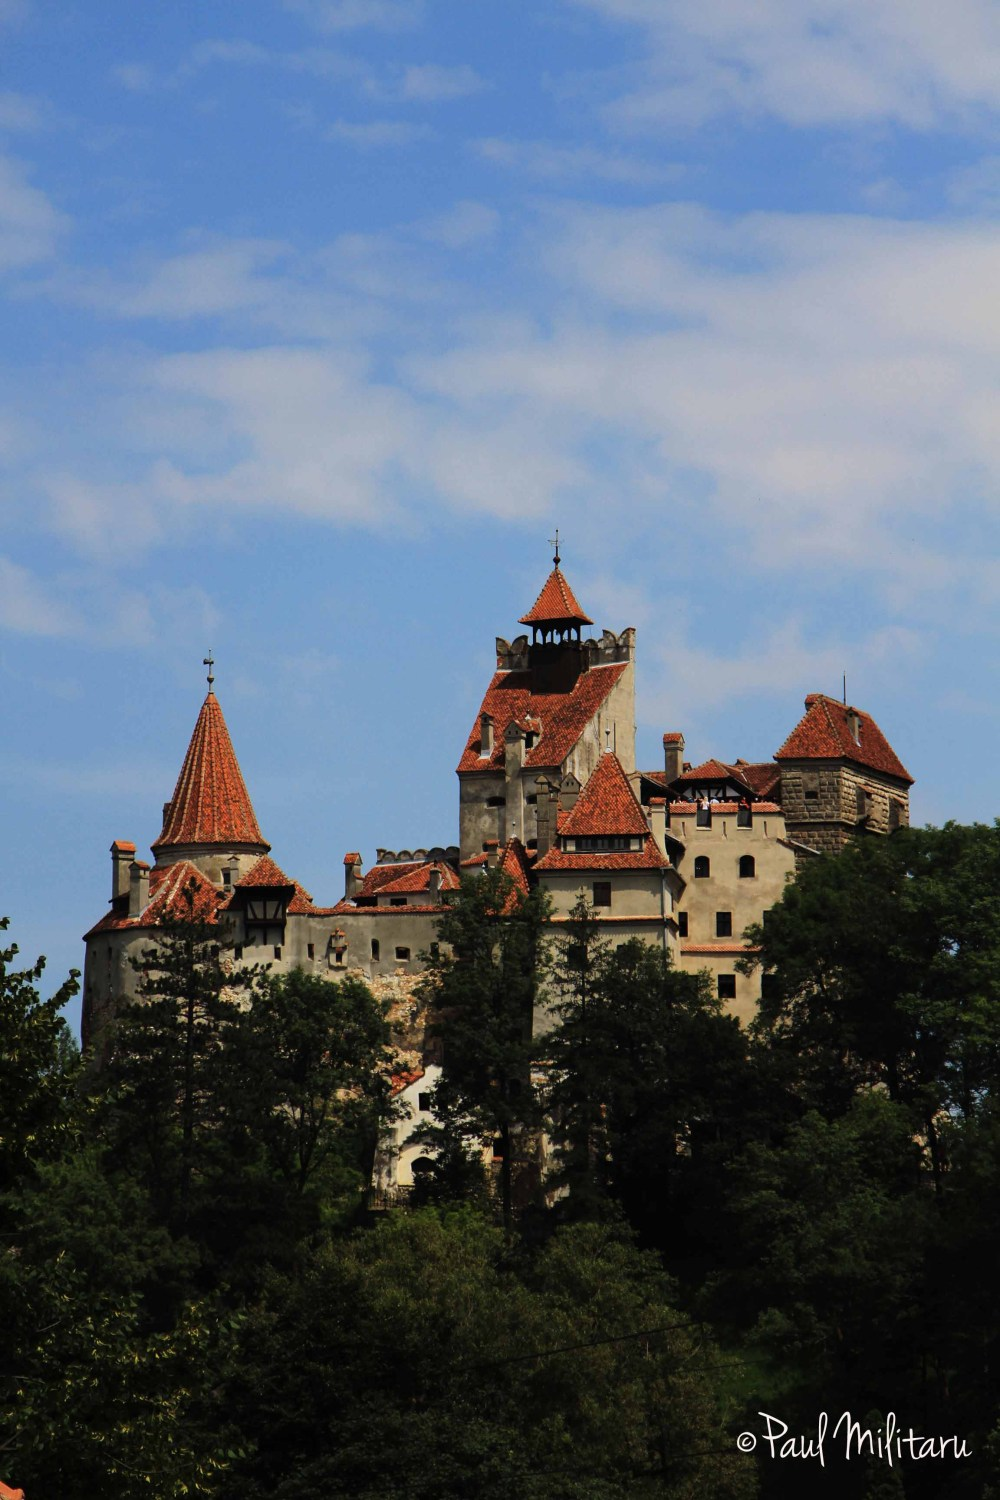 the castle of the worst vampire - Dracula